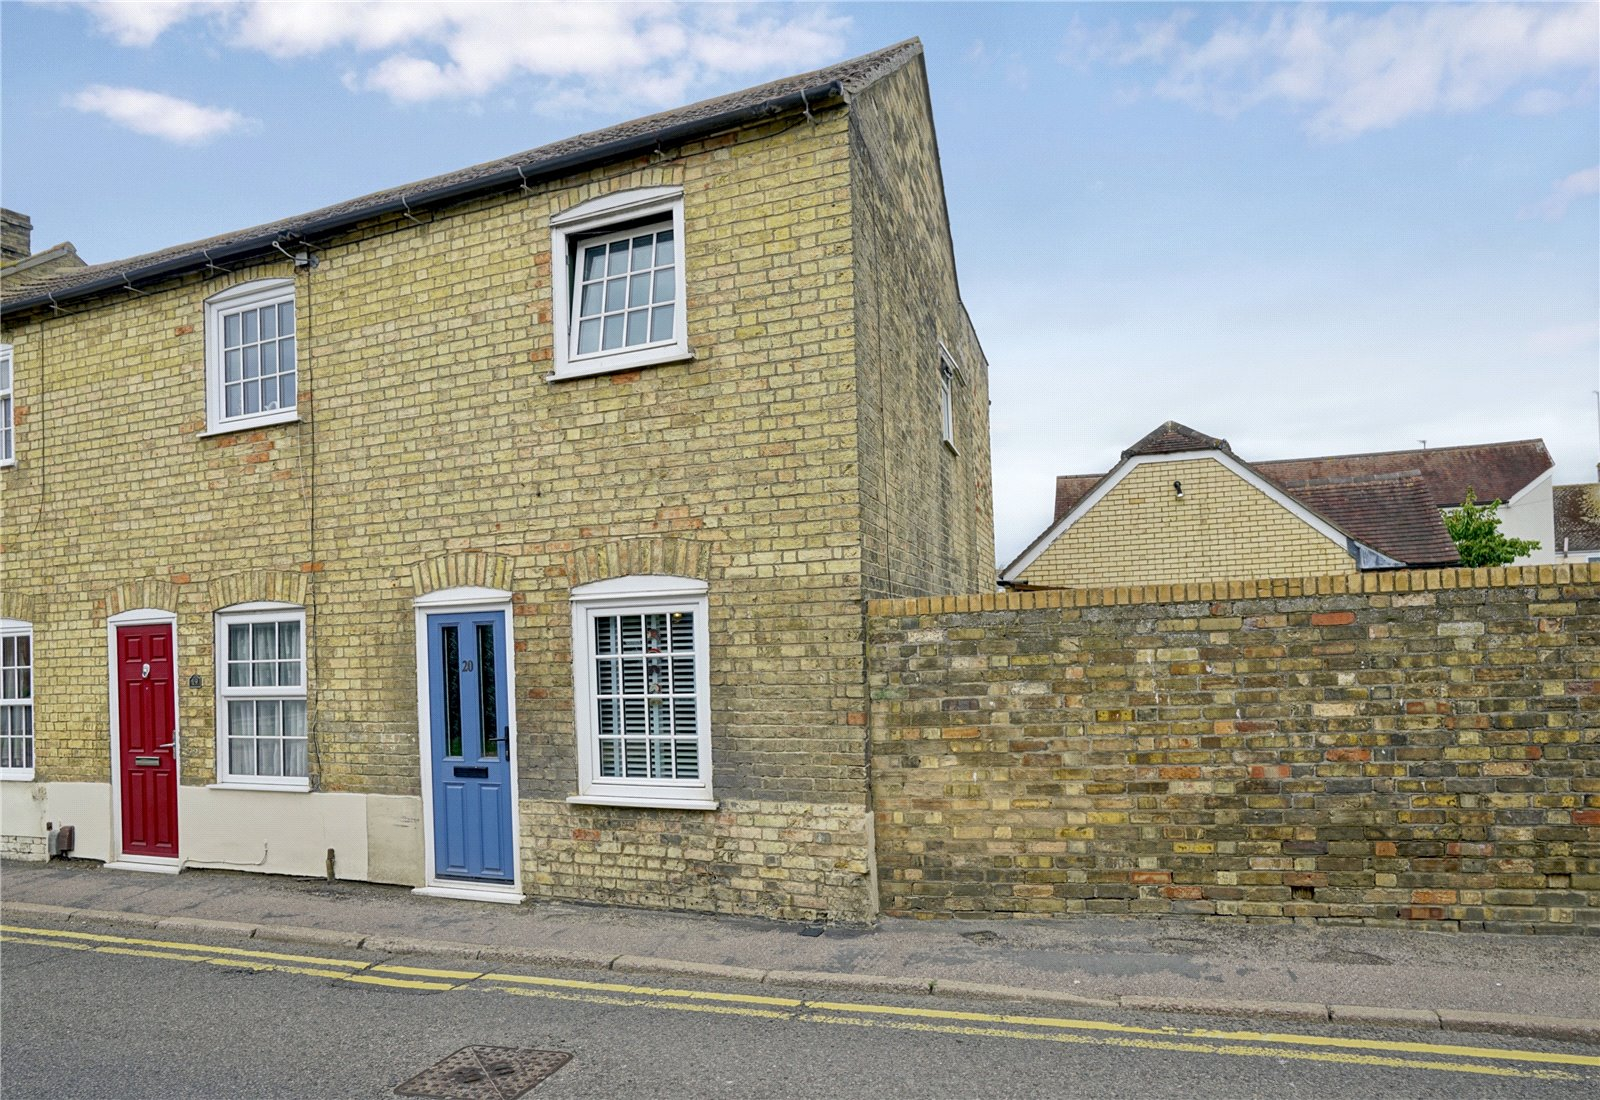 2 bed house for sale in Godmanchester, PE29 2HU 0